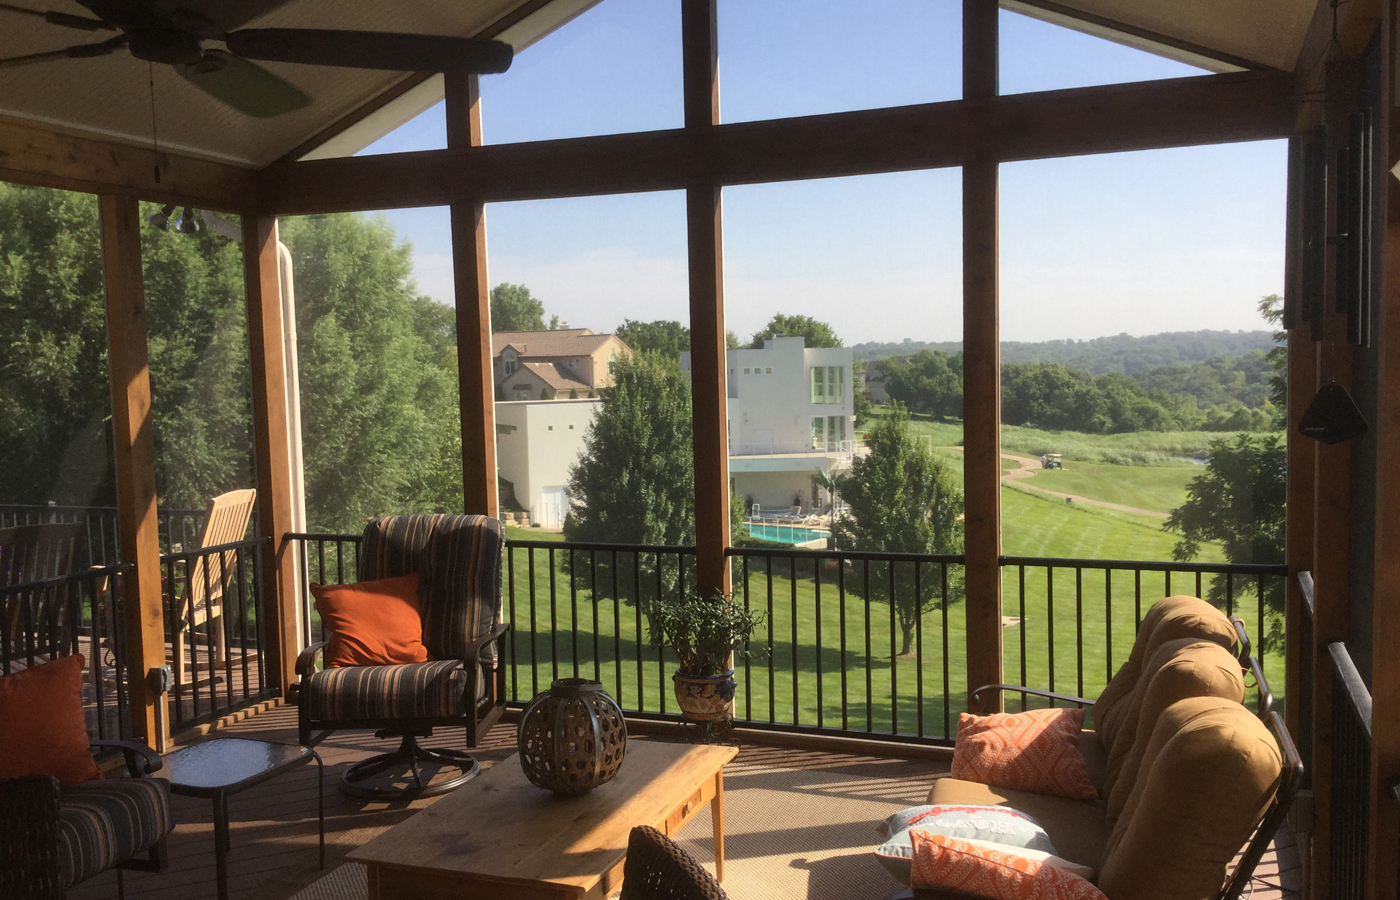 Should Your New Kansas City Area Screened Porch Have A